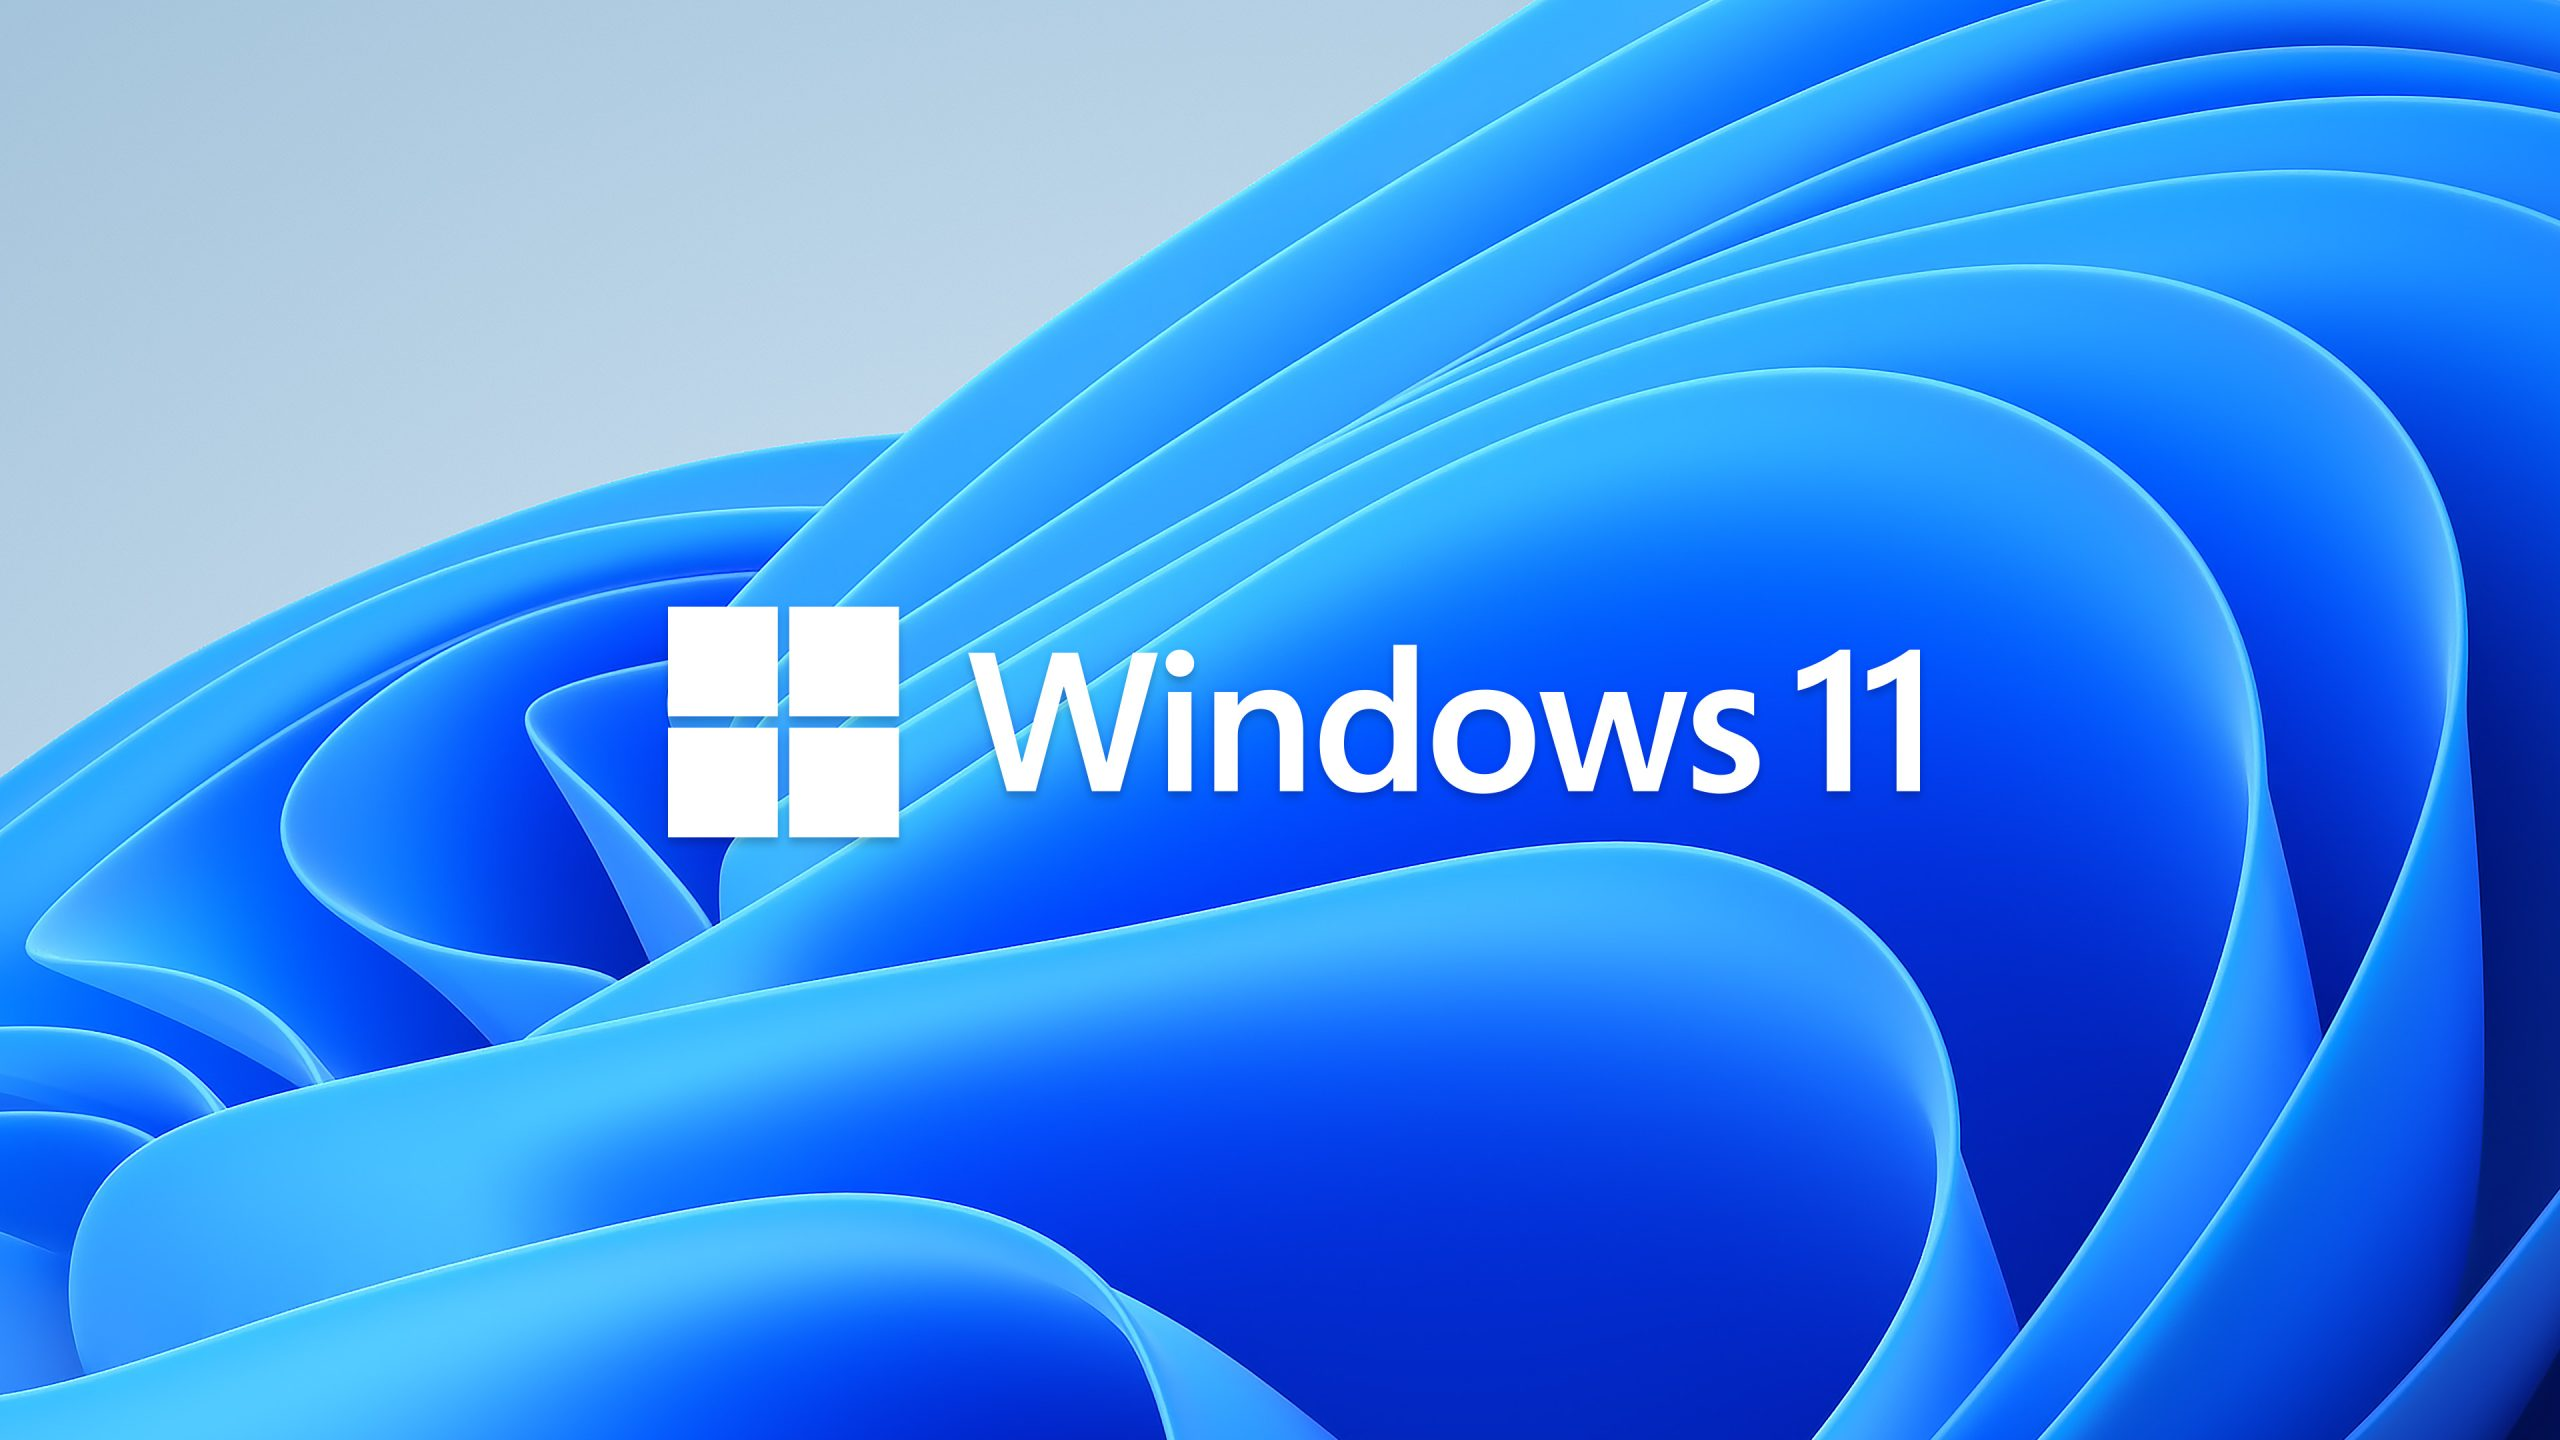 Windows 11 A new Windows experience, bringing you closer to the people and things you love.